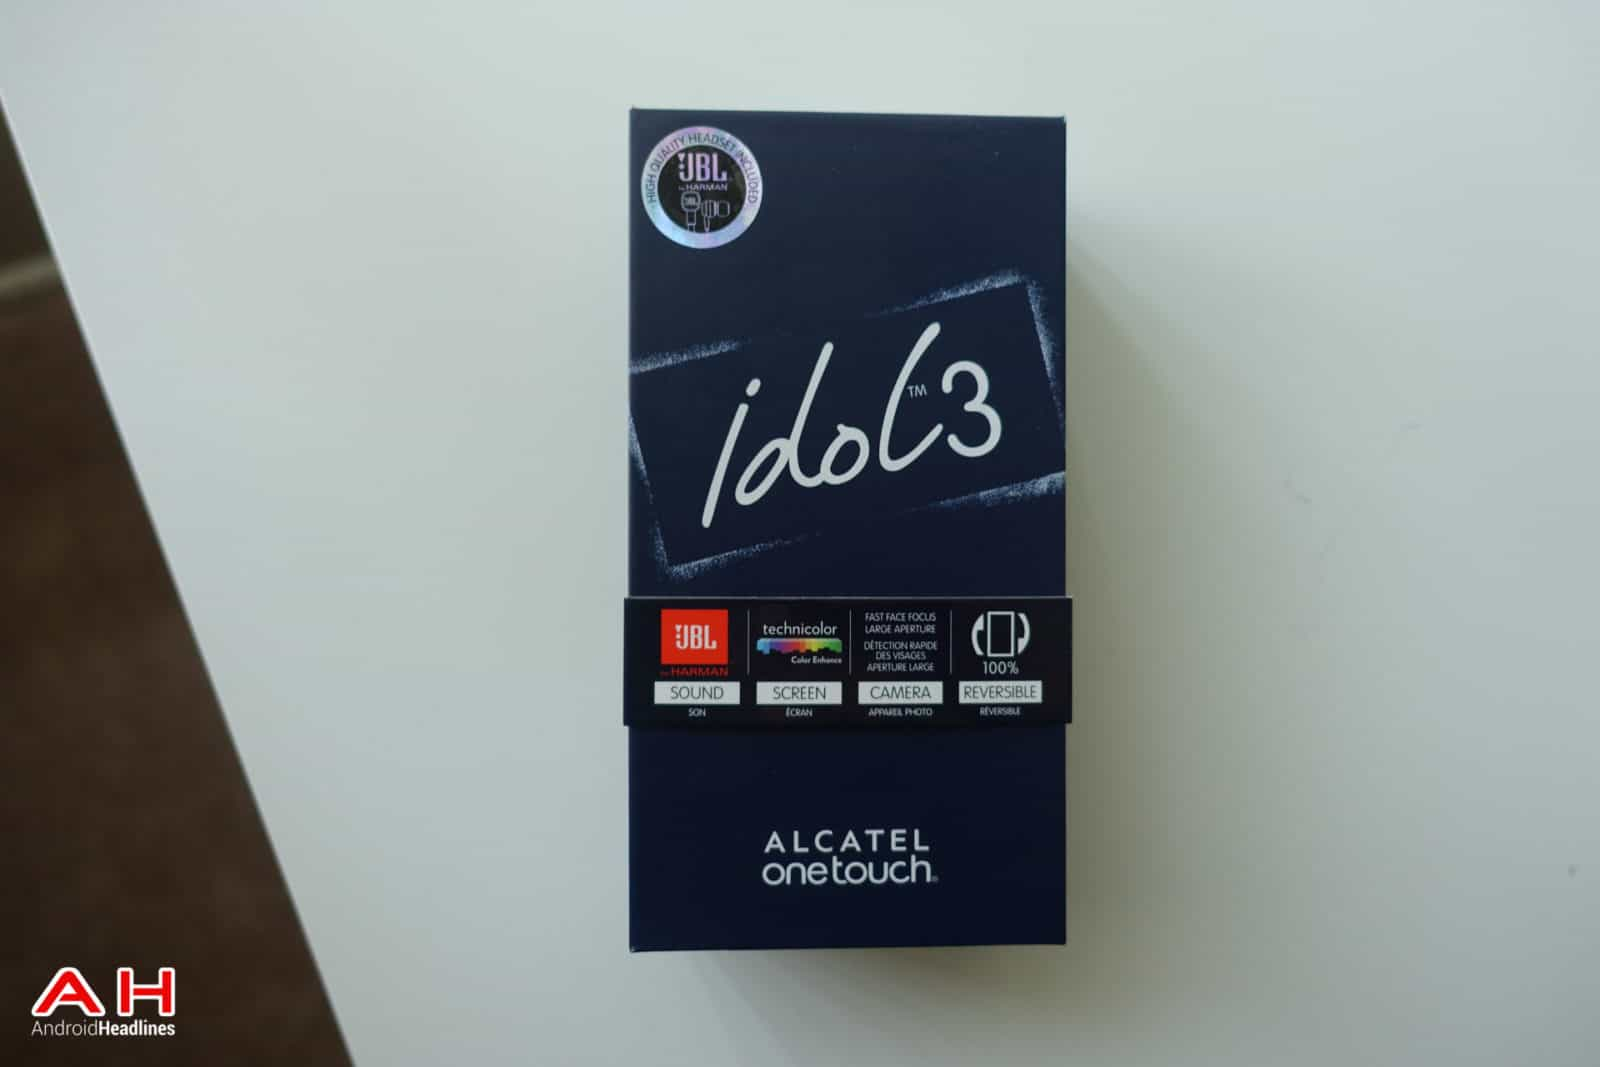 Alcatel-OneTouch-Idol3-Giveaway-AH-1